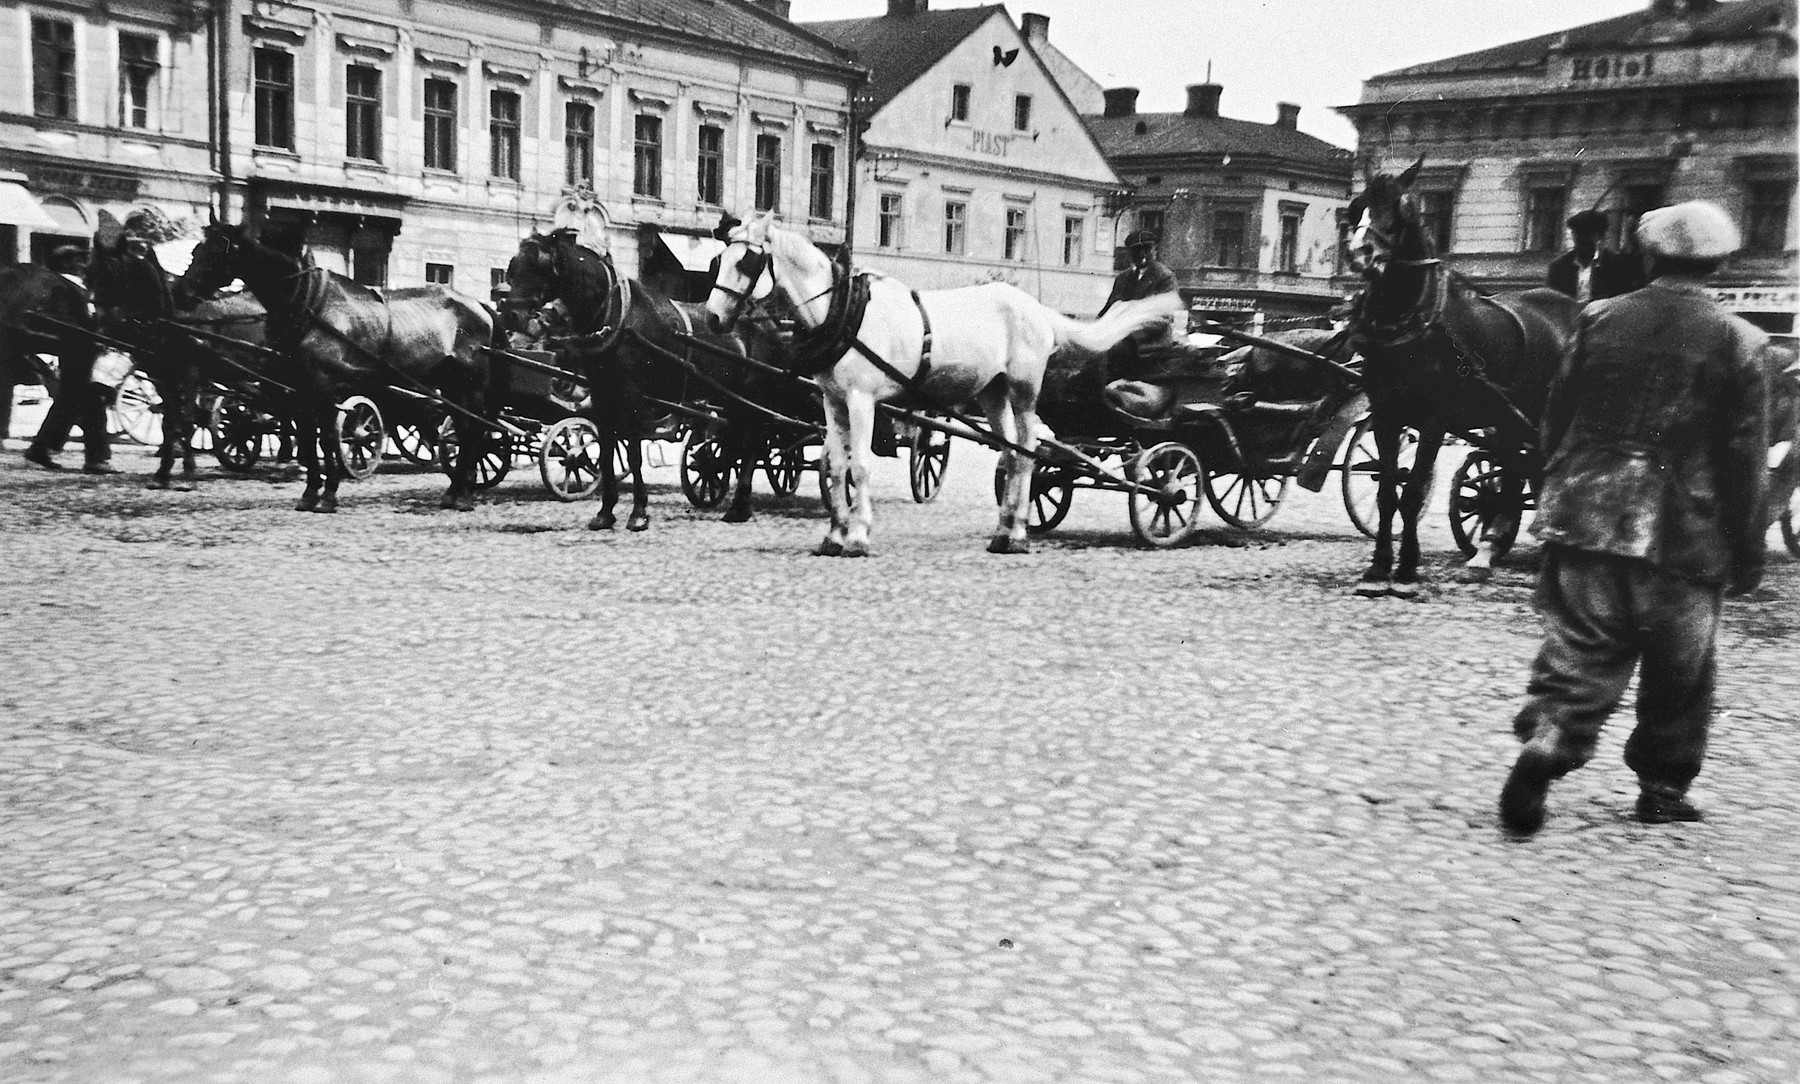 Horse-drawn carts line up in of the public square that served as an outdoor market in Oswiecim, Poland [later Auschwitz] before the war.